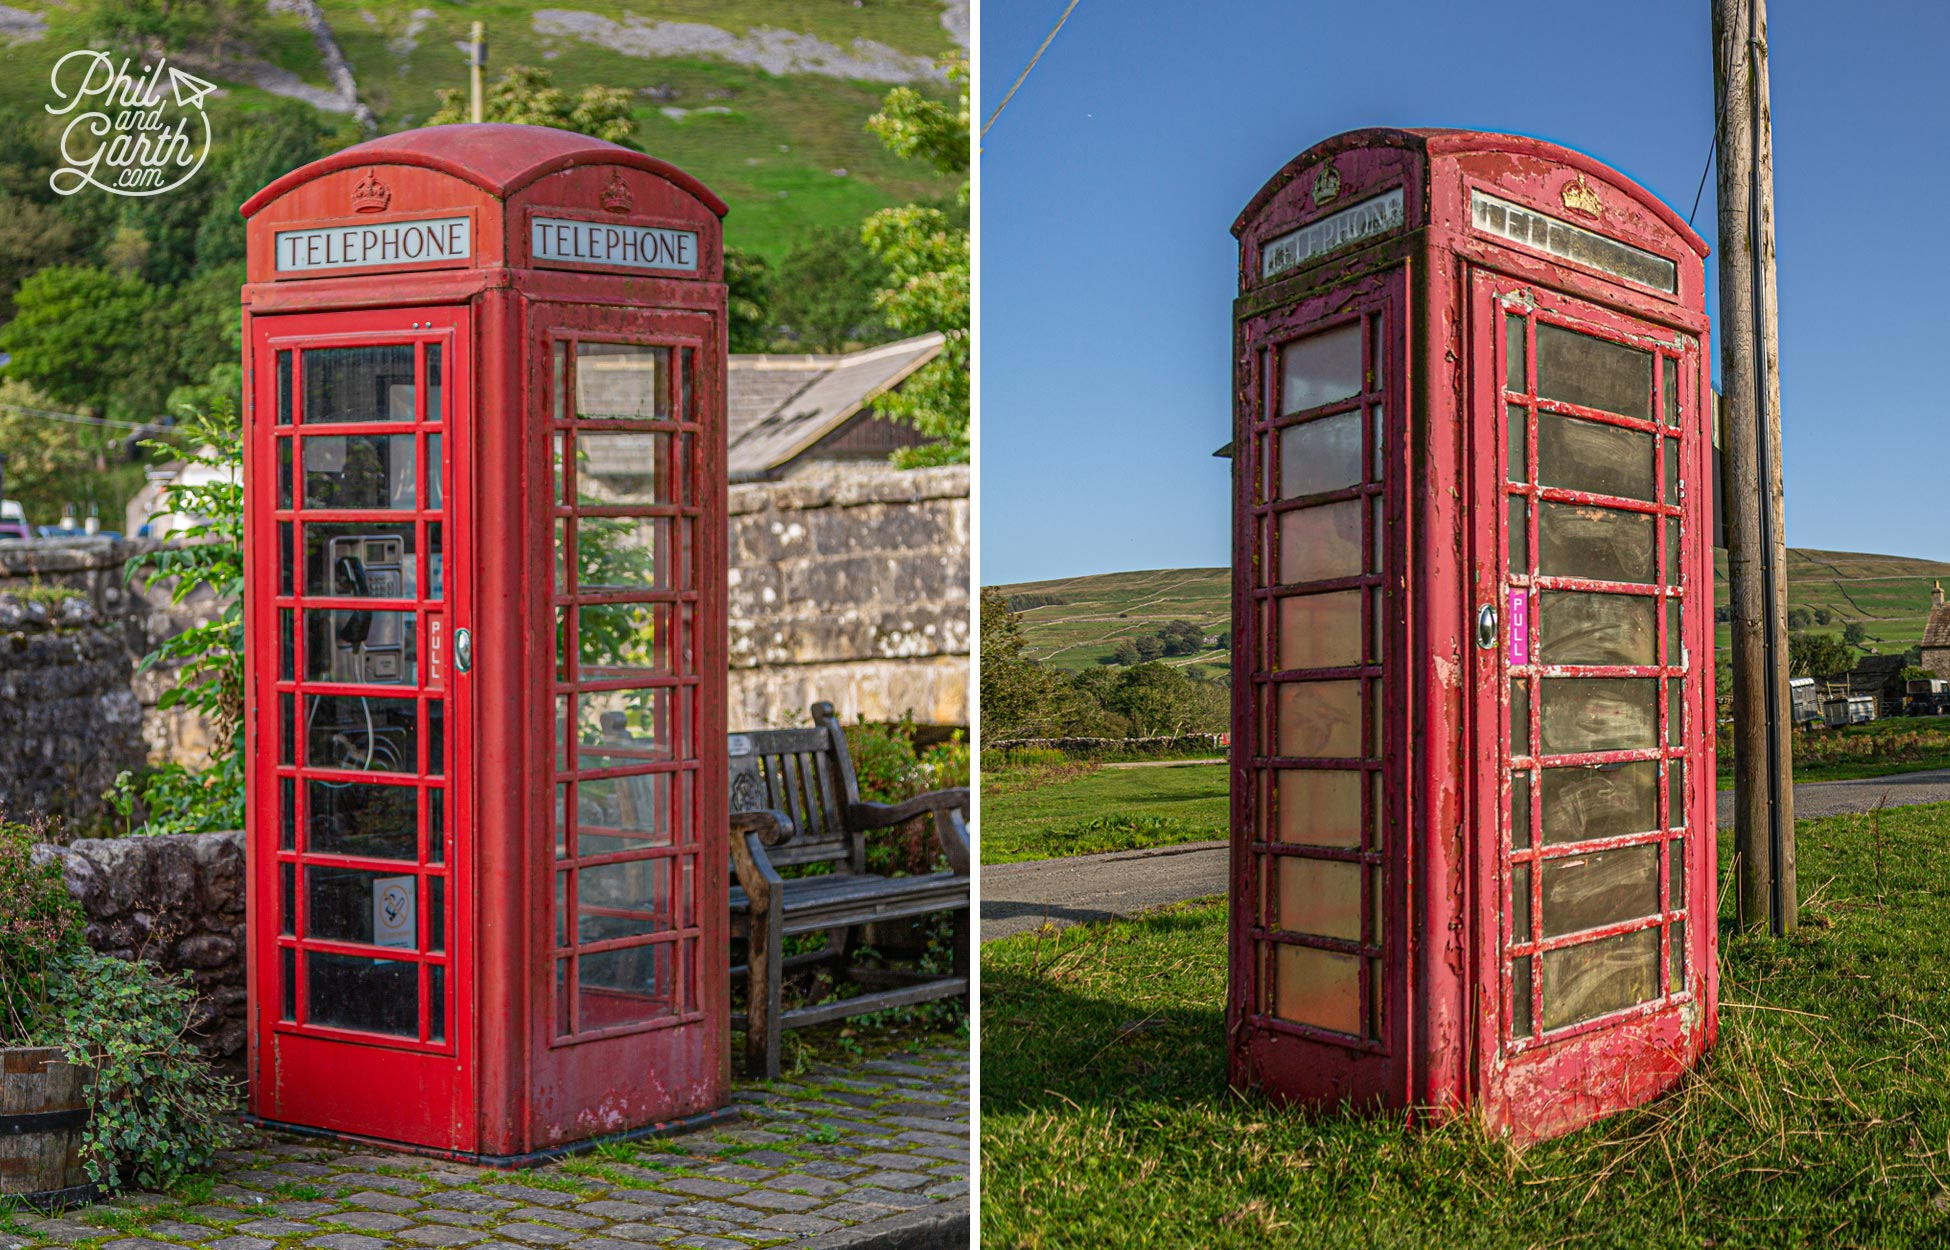 A red telephone box in Kettlewell and another weathered box in Wensleydale